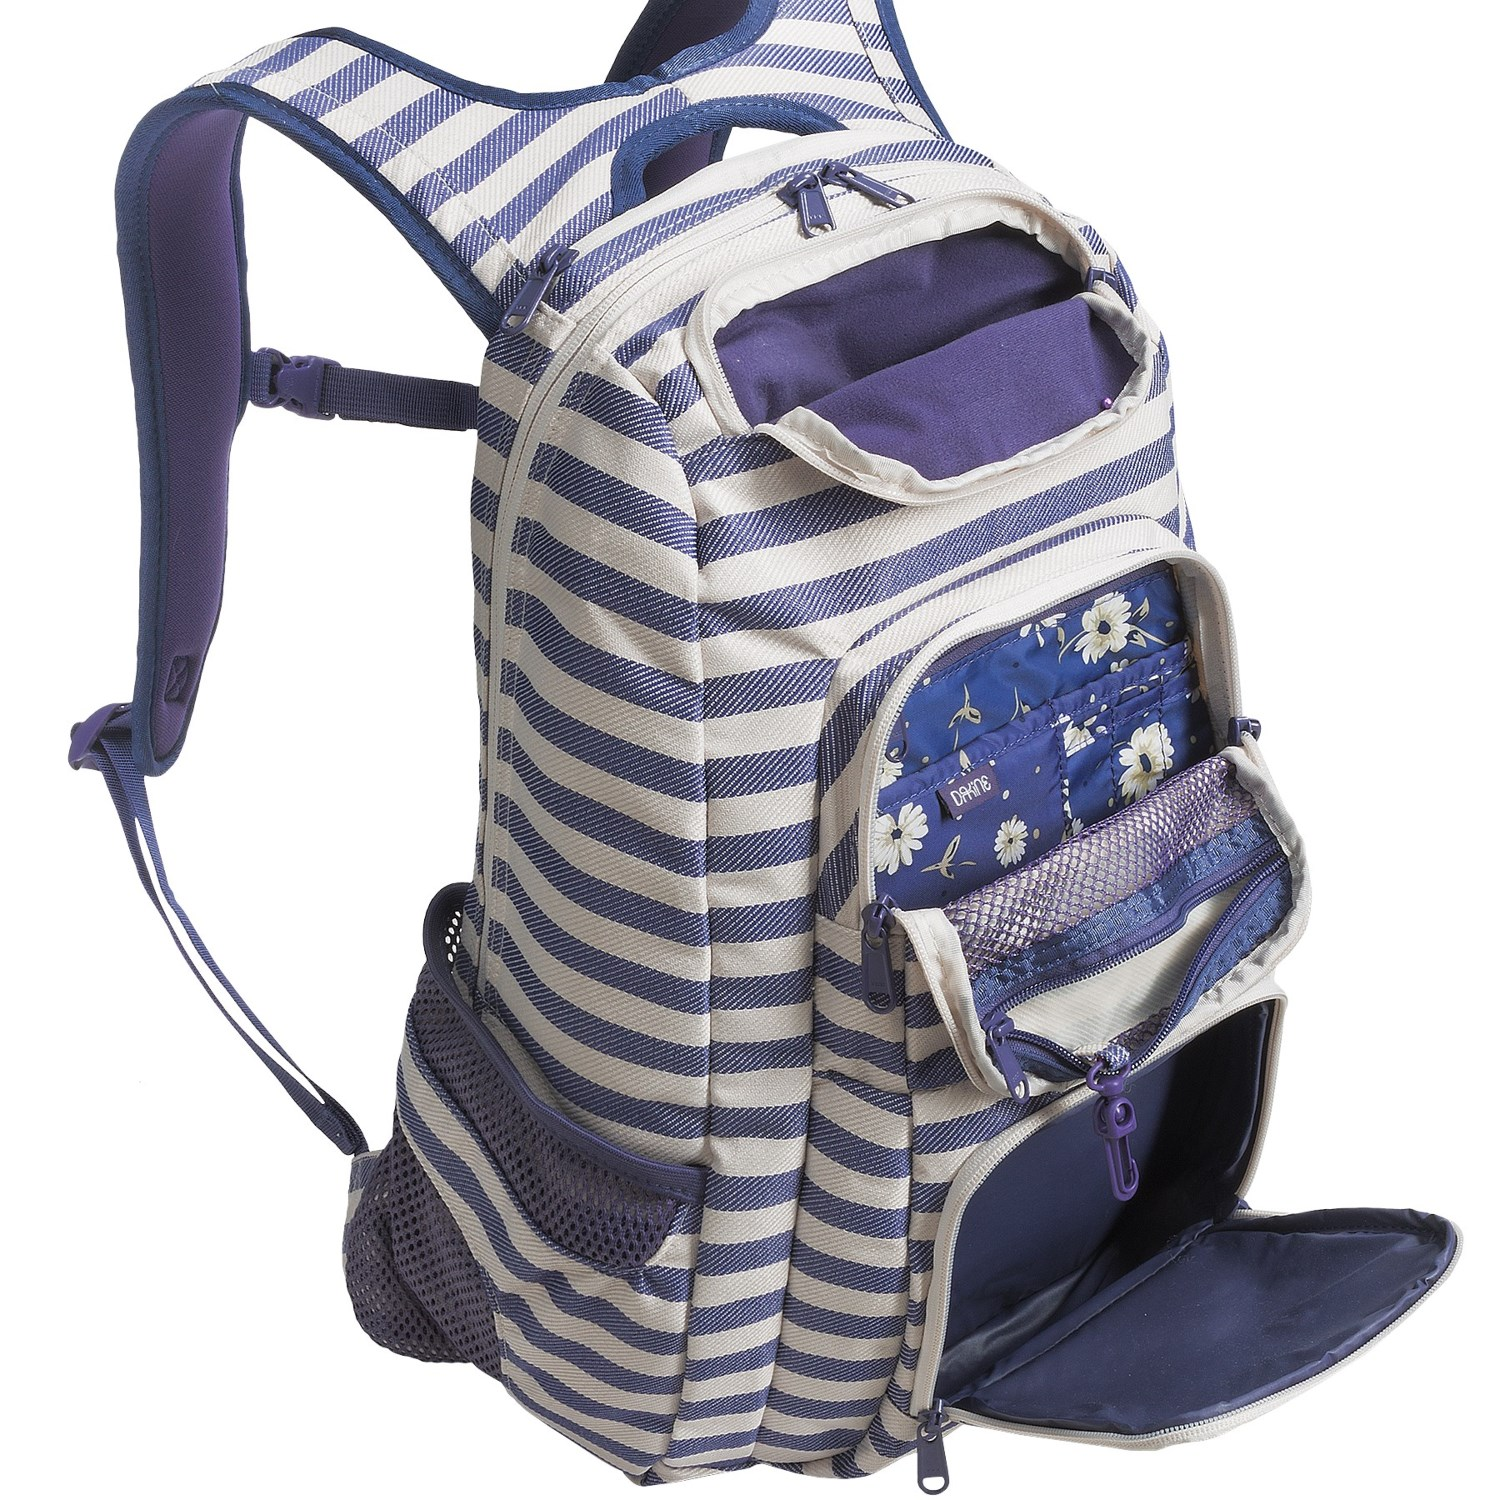 DaKine Jewel 26L Backpack (For Women) - Save 33% 1c27043d89f29